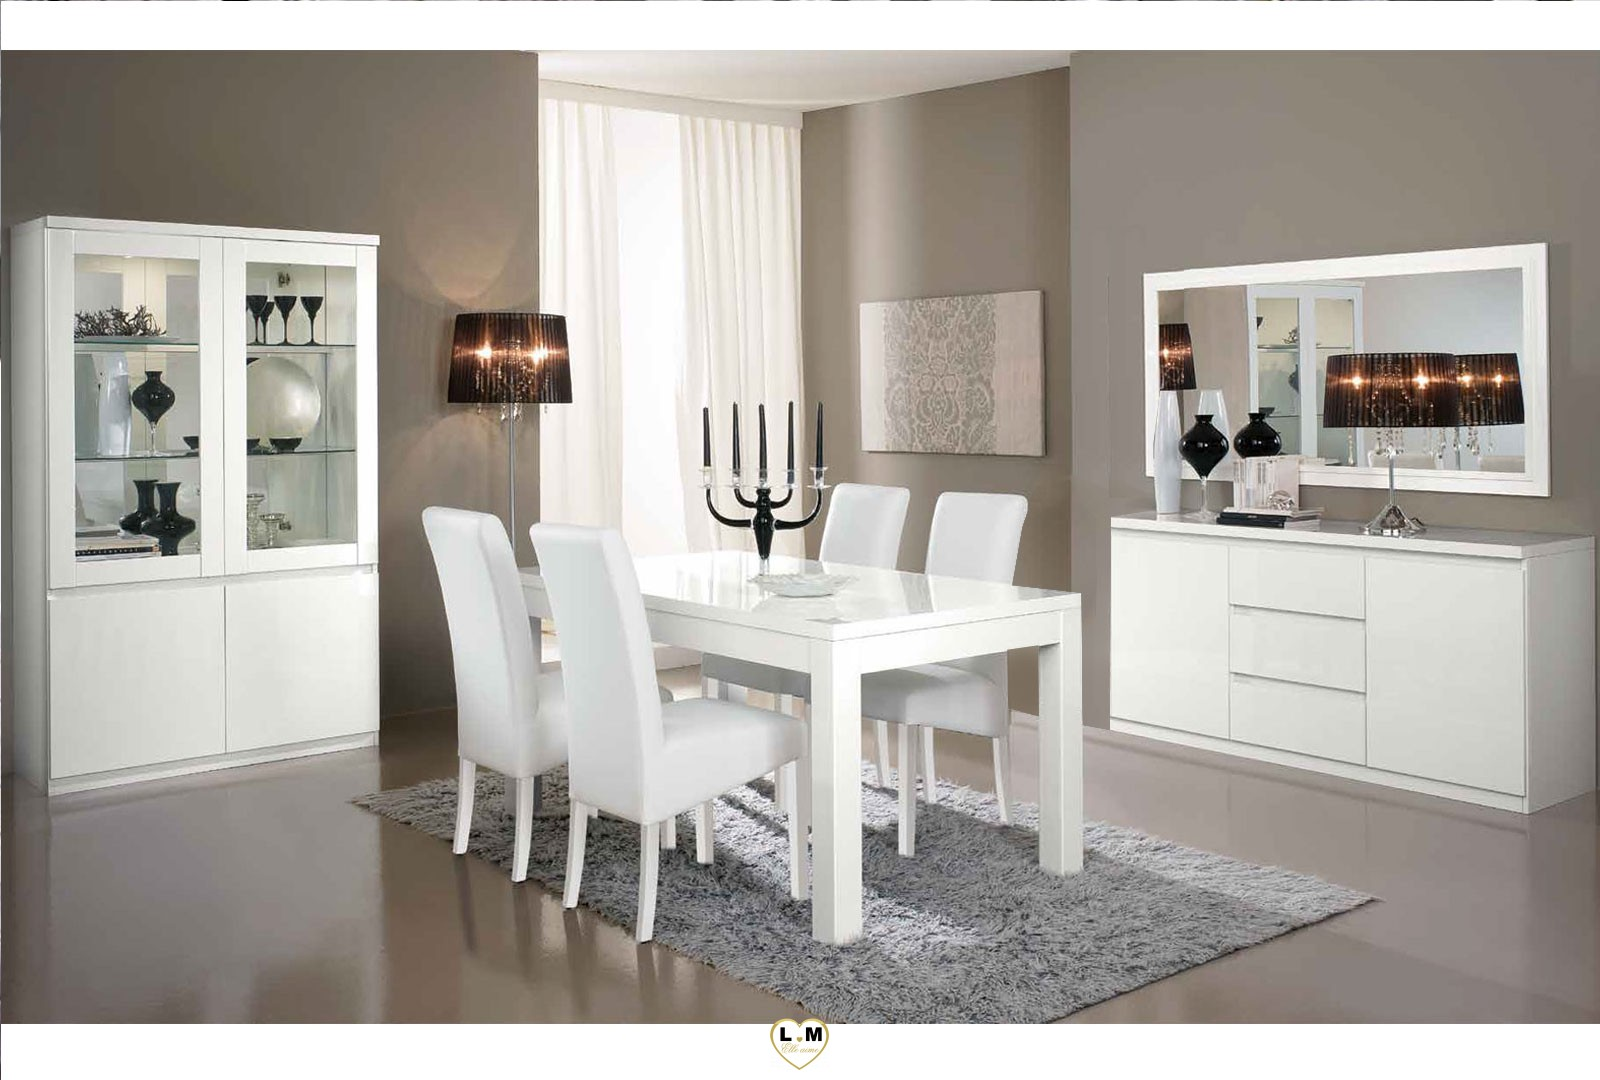 rivazzura laque blanc sejour salle a manger moderne la. Black Bedroom Furniture Sets. Home Design Ideas